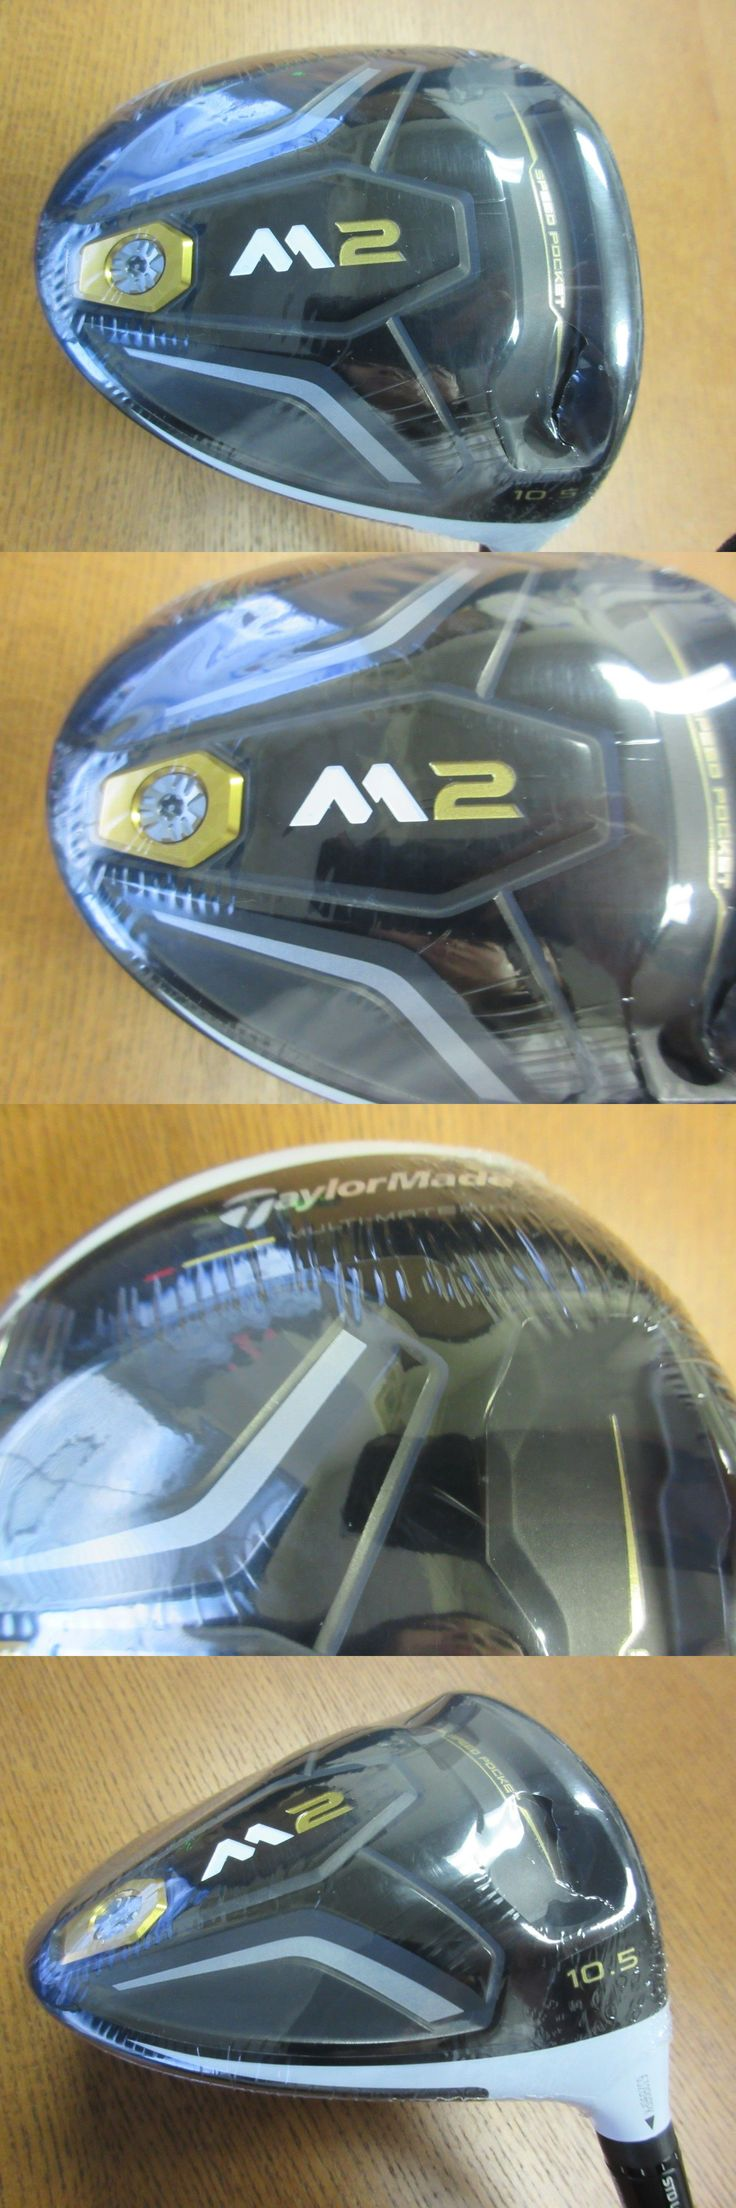 Golf Clubs 115280: New Taylormade Golf 2016 M2 10.5 Driver Fujikura Pro50 Graphite Regular Men S -> BUY IT NOW ONLY: $299.99 on eBay!